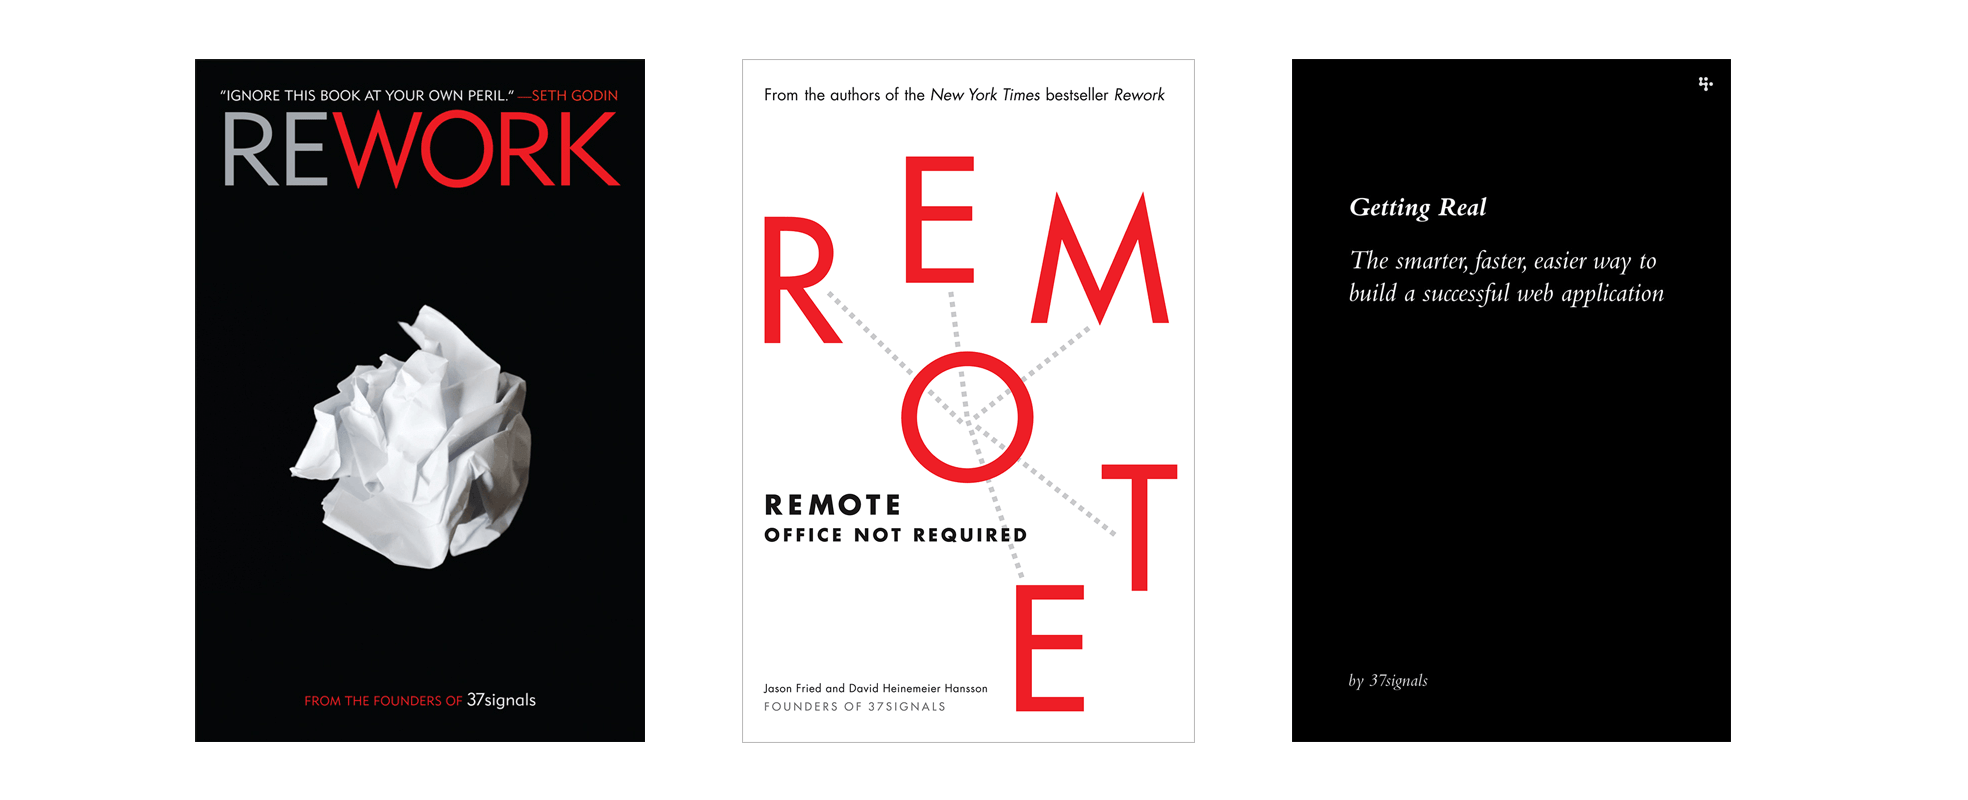 Covers of the 3 books that the Basecamp team have written – Getting Real, Rework and Remote